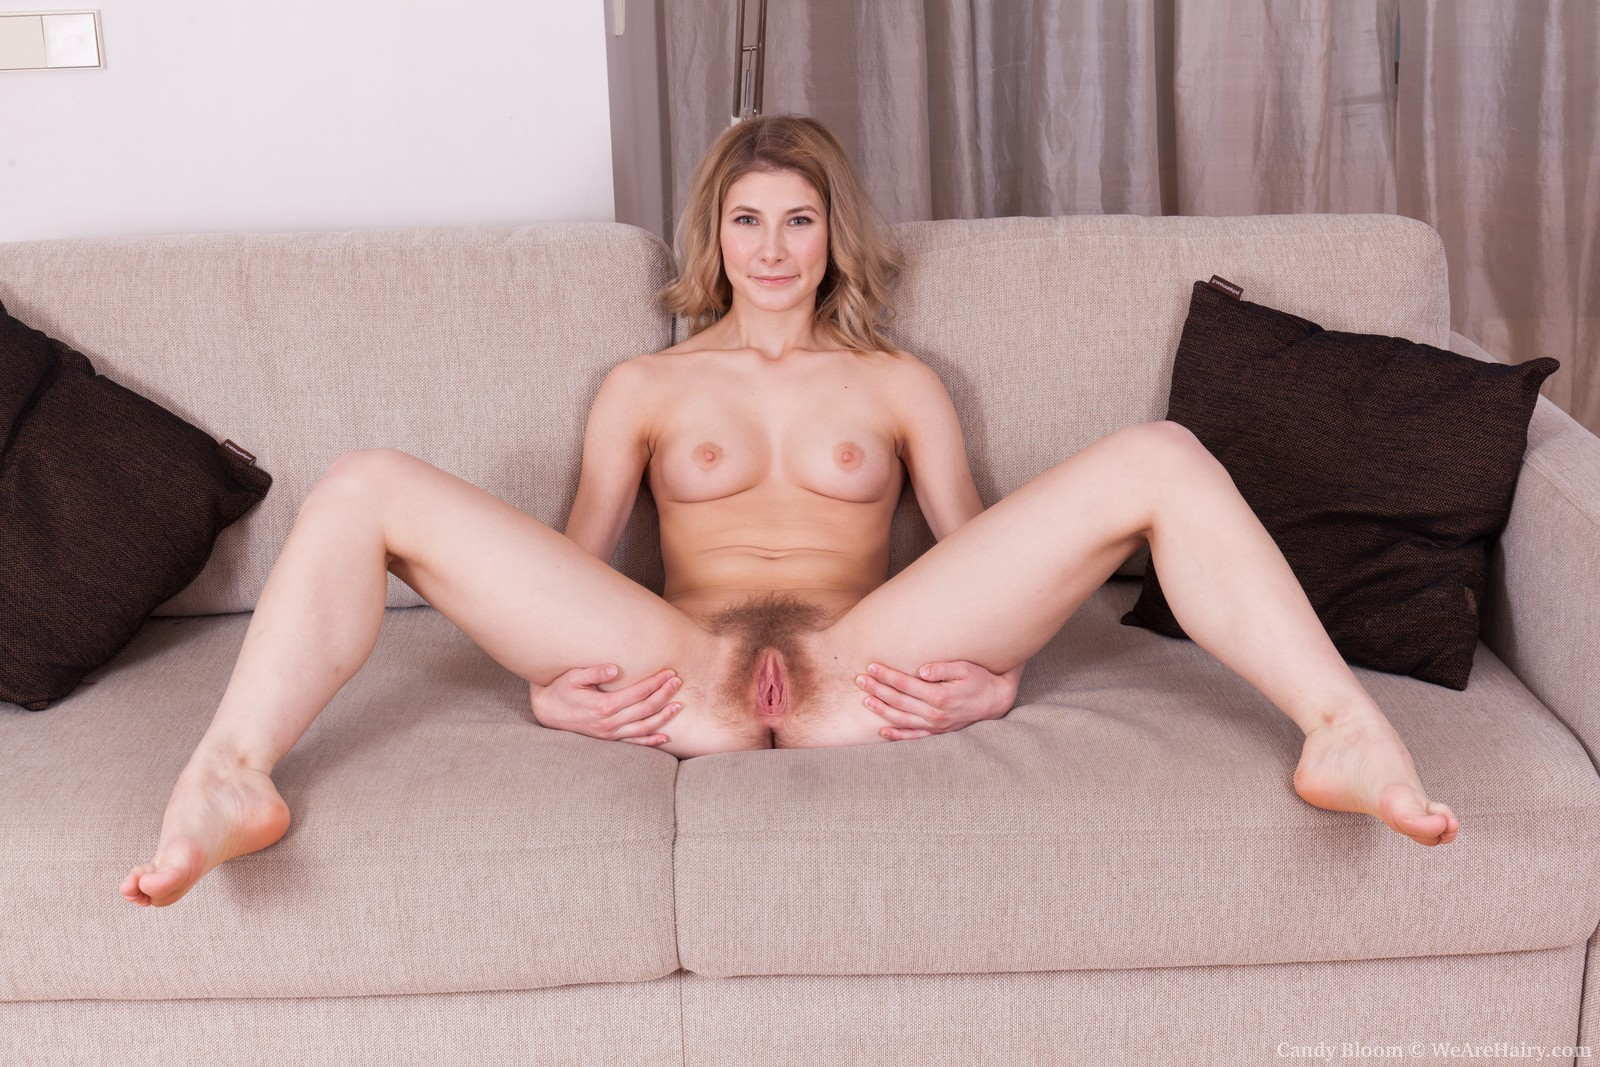 candy-bloom-is-in-her-black-lingerie-and-eager-to-strip-naked-and-show-us-her-body.-she-rubs-her-30a-breasts-and-touches-her-hairy-pussy-all-over.-she-enjoys-herself-and-her-21-year-old-hairy-body.13.jpg